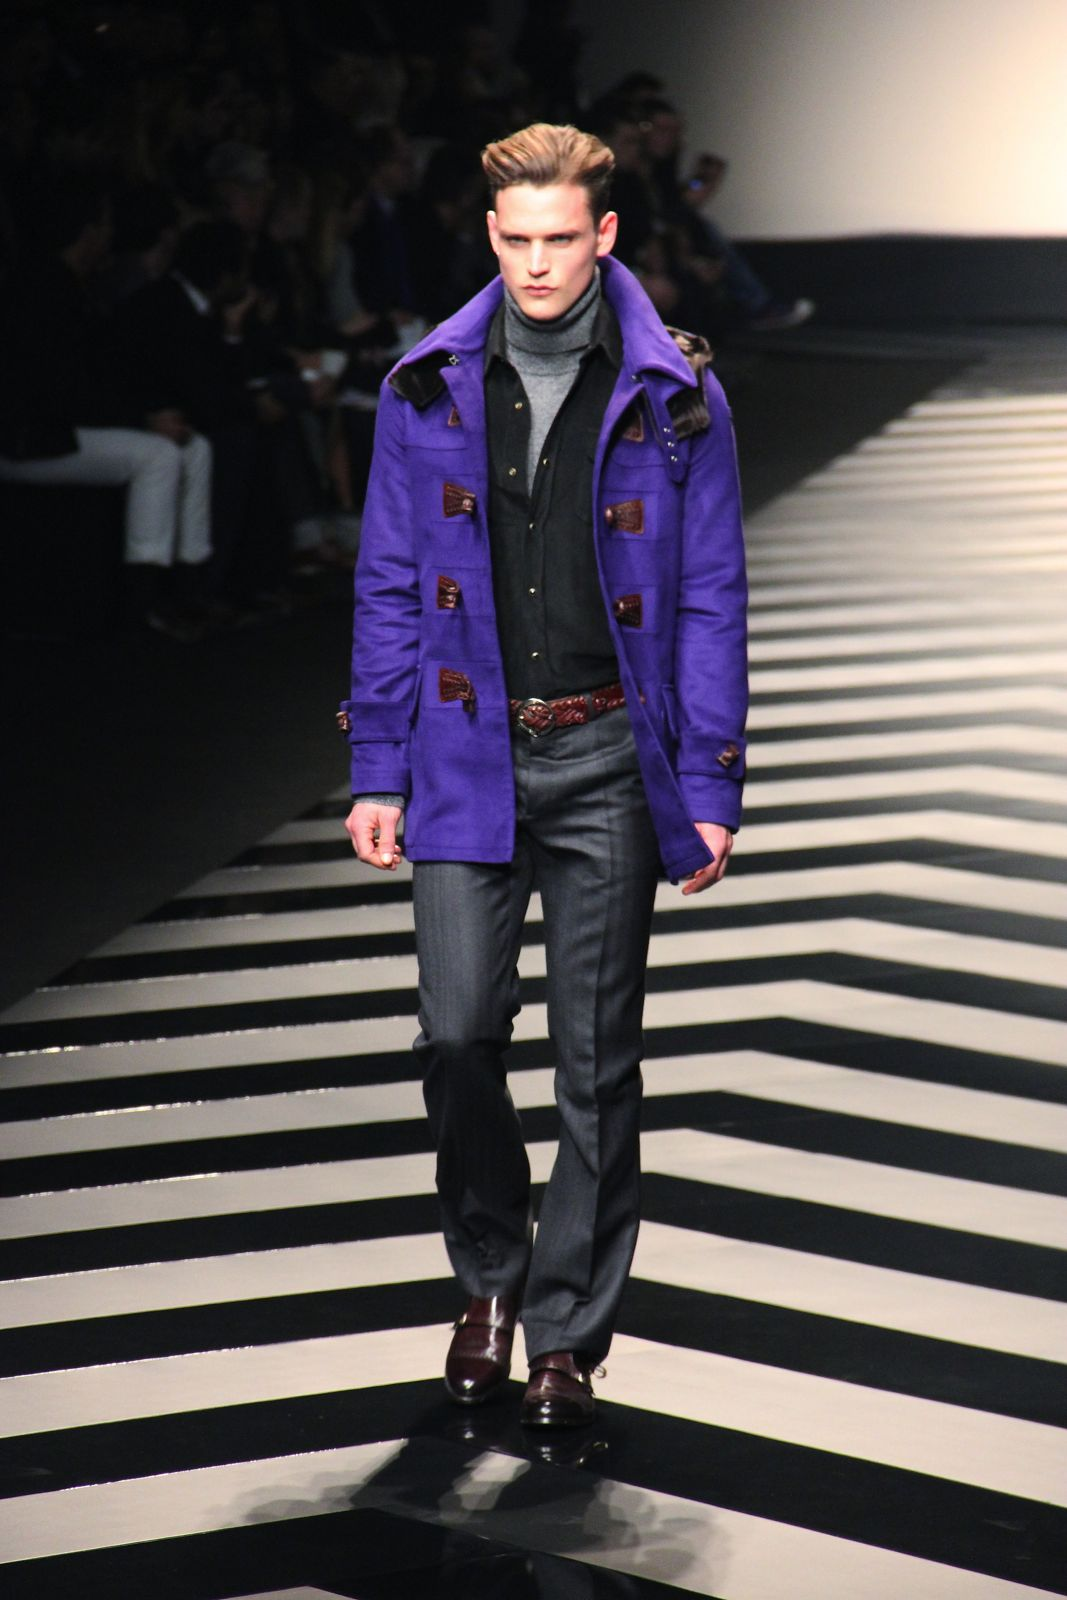 Roberto Cavalli Fall Winter 2012-13 Men